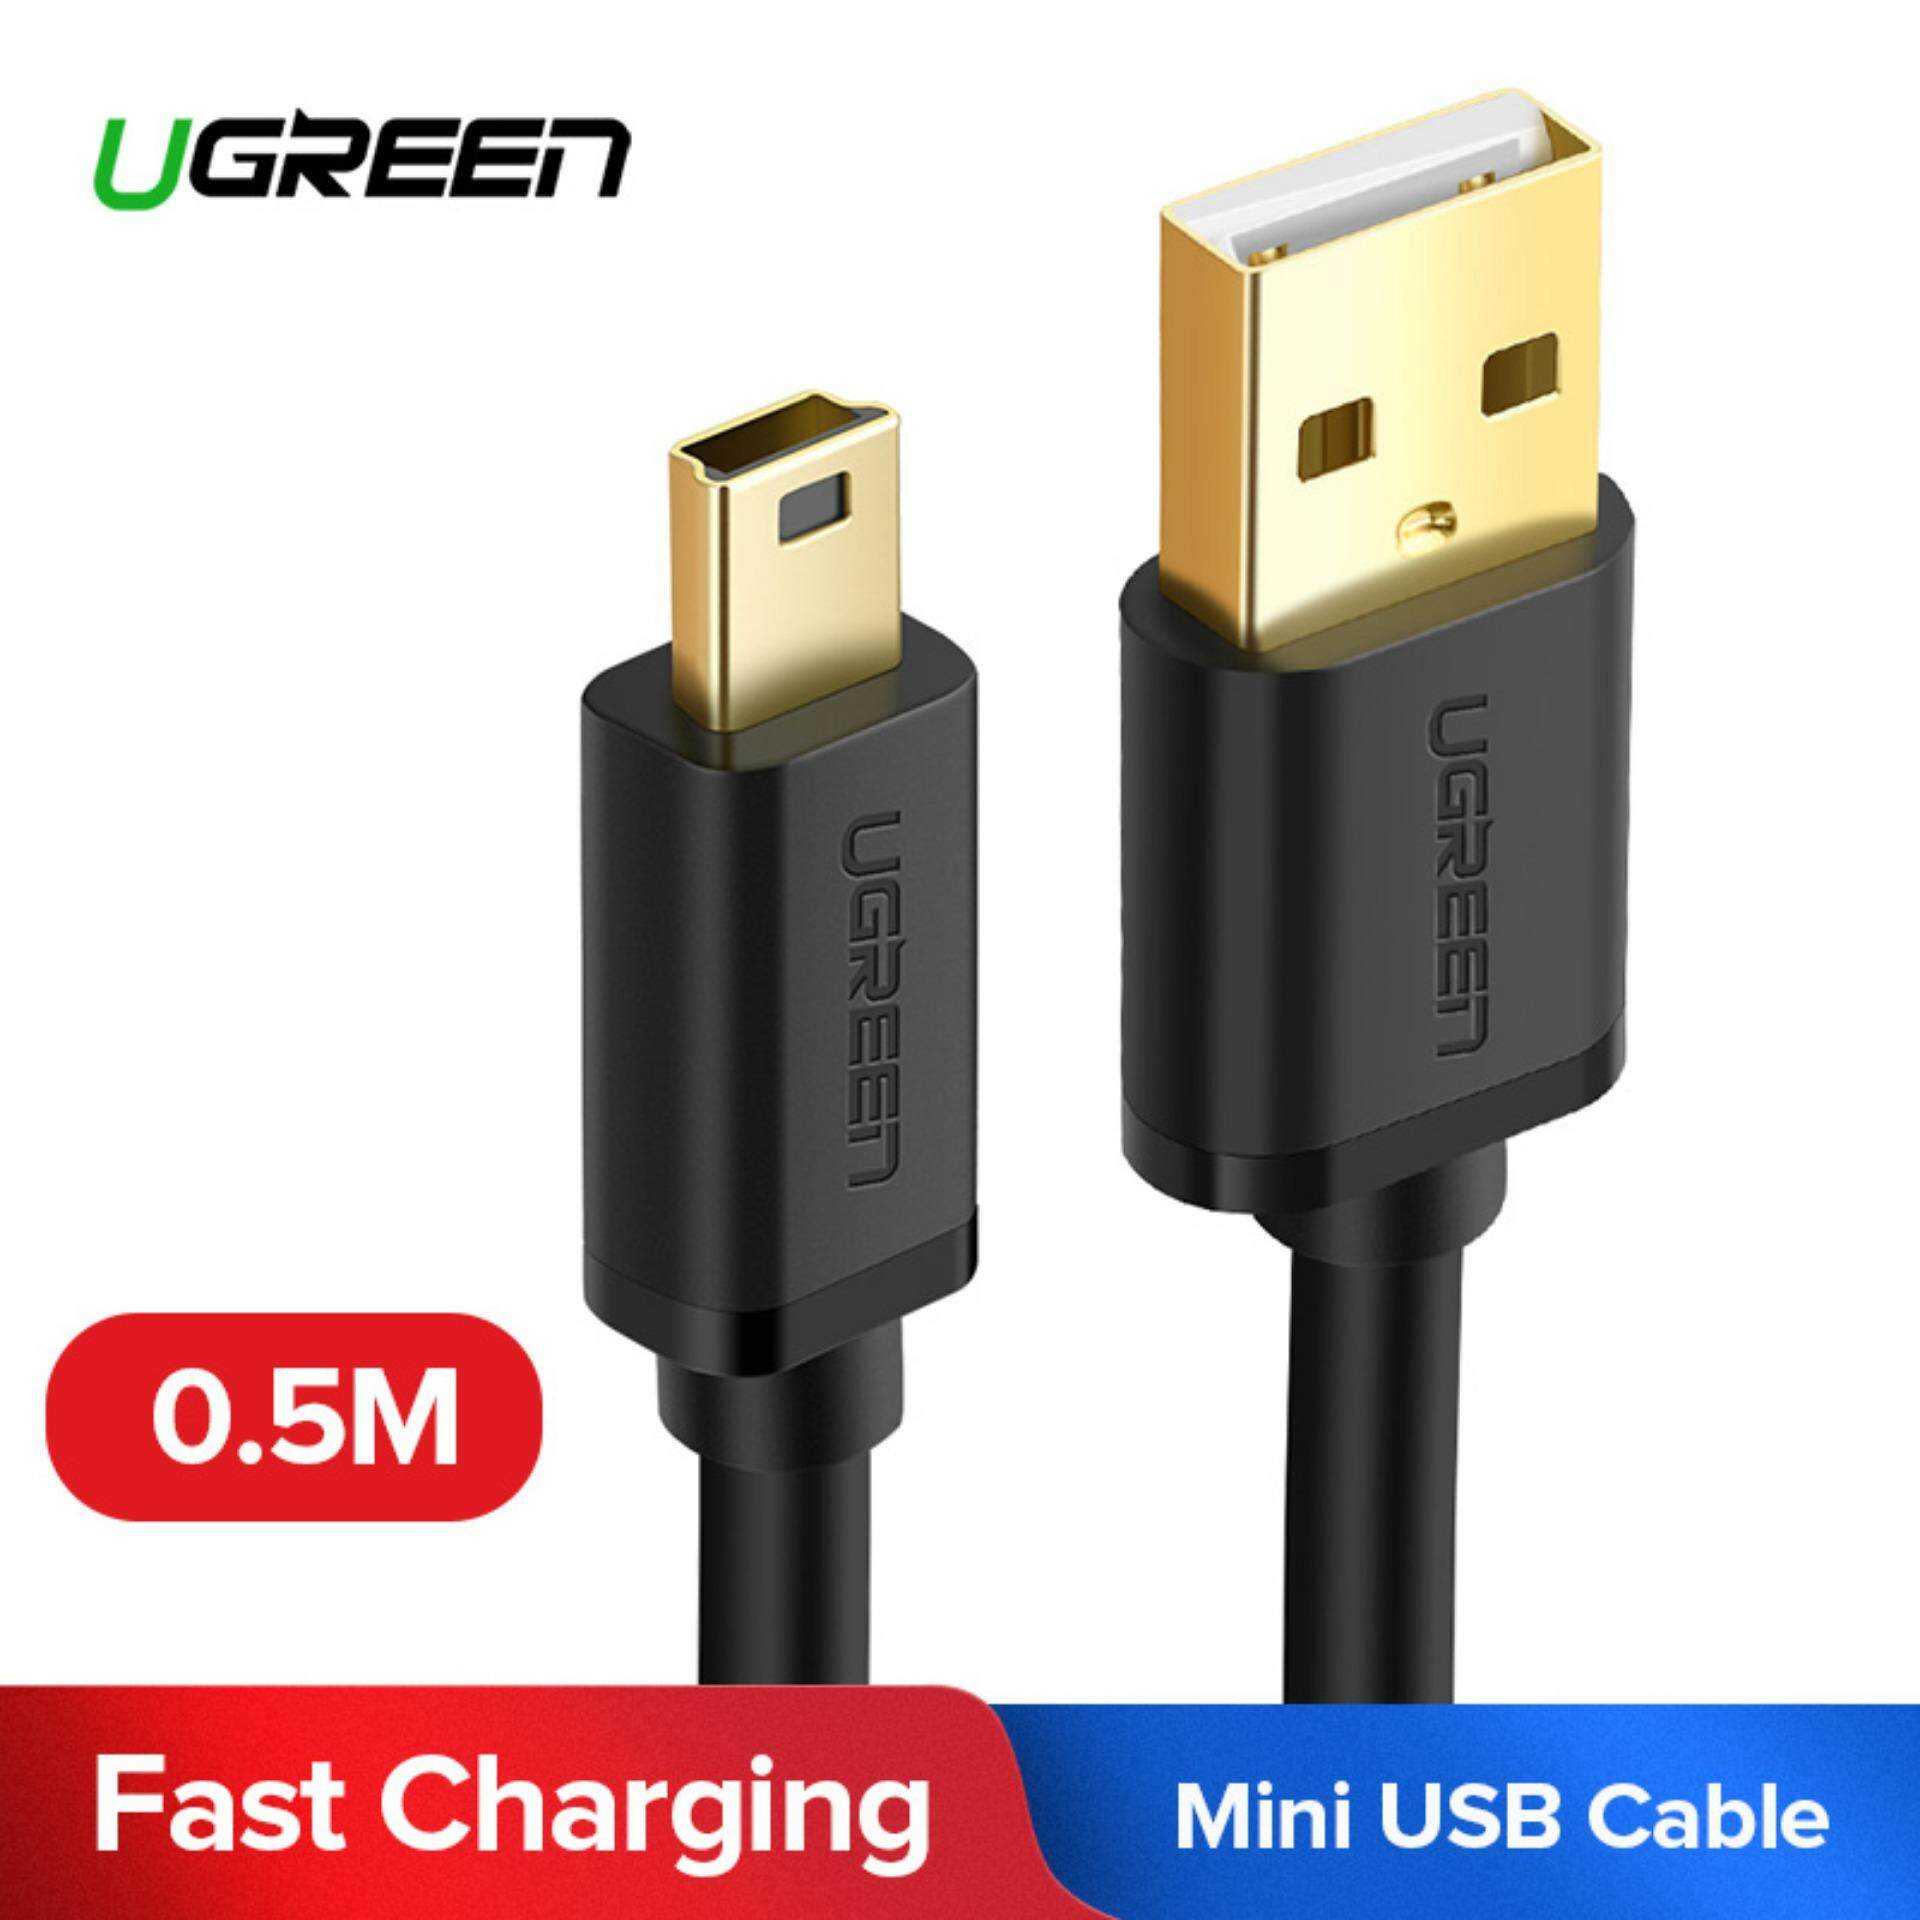 UGREEN 0.5 Meter Mini USB Cable USB 2.0 Type A to Mini B Cable Male Cord